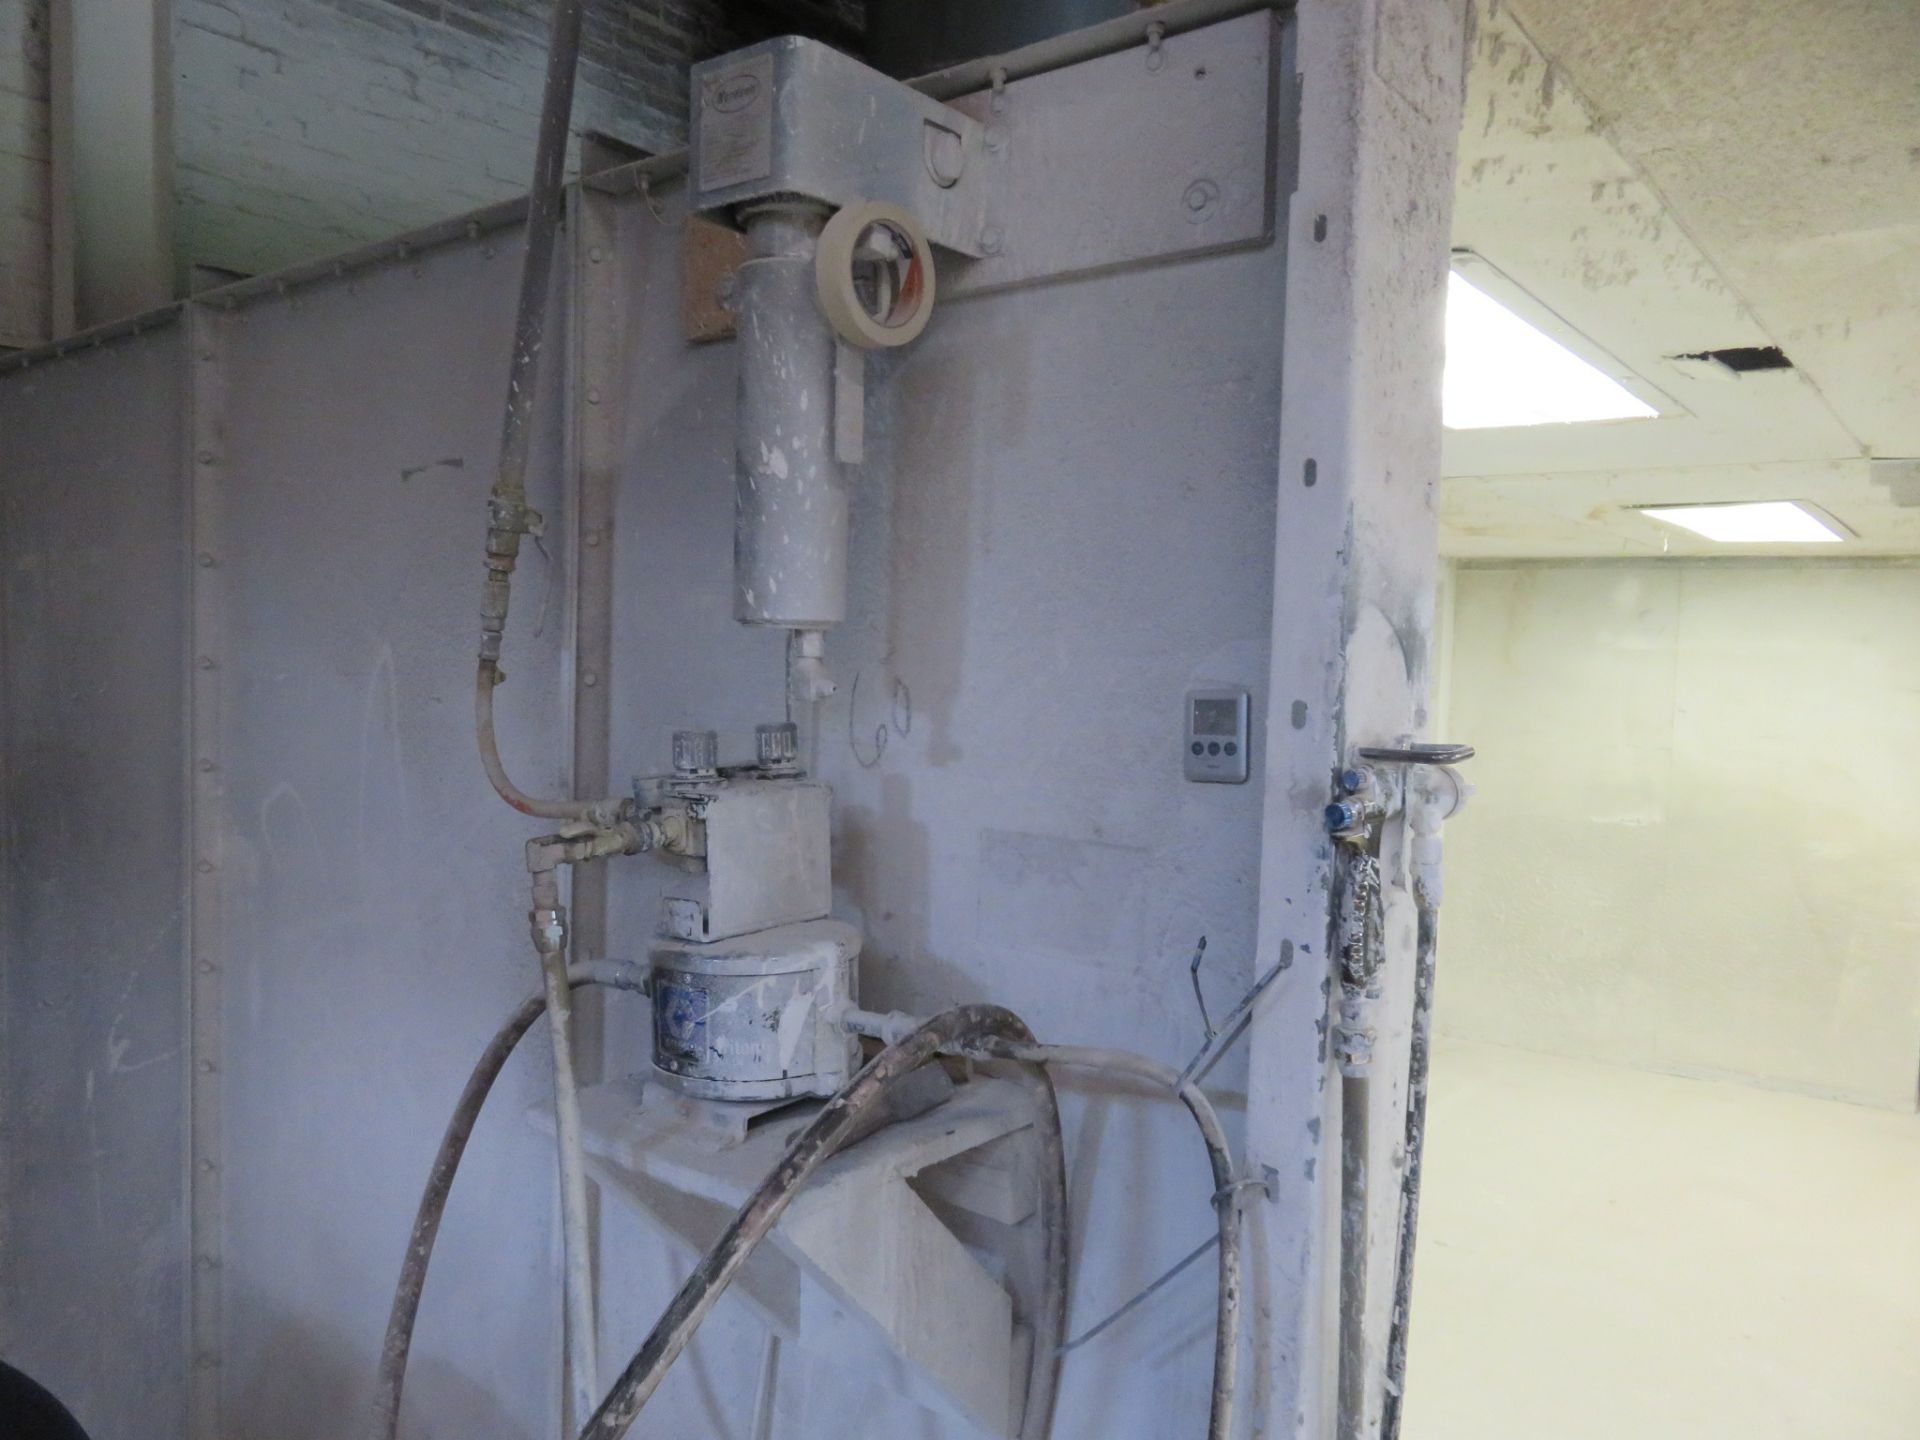 Global Finishing Systems Paint Booth approx 18' x 9' x 7' with a 6' Overhang - Image 2 of 4